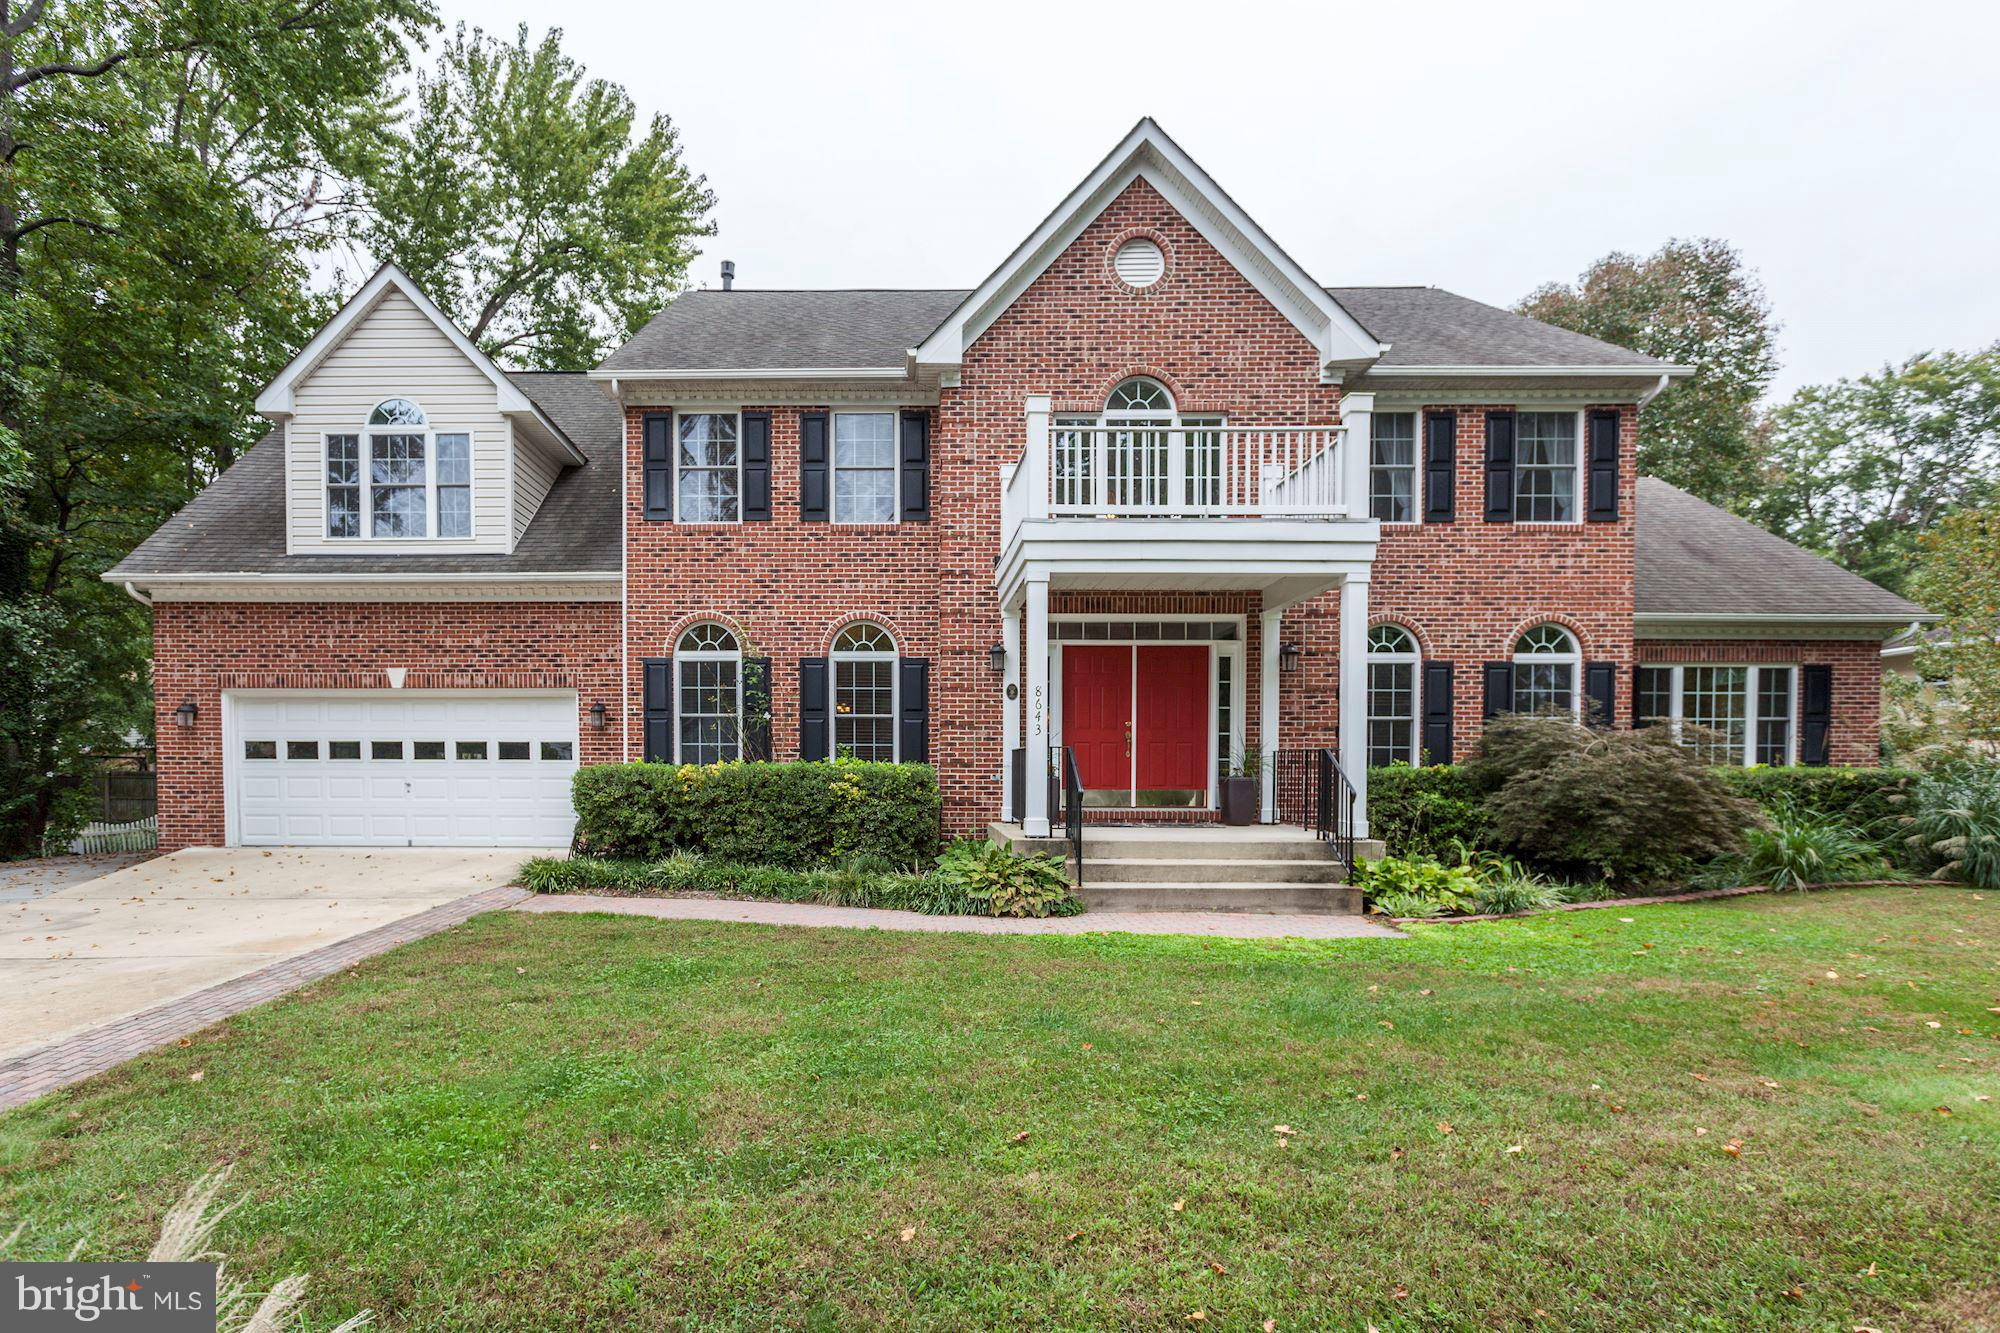 Price Adjusted - A BEAUTY!!  4 BR - 3.5 BA, 2 Fireplaces in Mt. Vernon Hills, part of George's original farm, freshly painted, hardwood floors, NEW GRANITE COUNTER-TOPS, sitting room off MBR w/ gas FP, library/music room, oversized water heater, 3 car garage (2 front - 1 on side) bsmt ready for your design and finishing touches, bath is plumbed.  Sale incl. lots 36, 37 & 38.   Call LA for info.